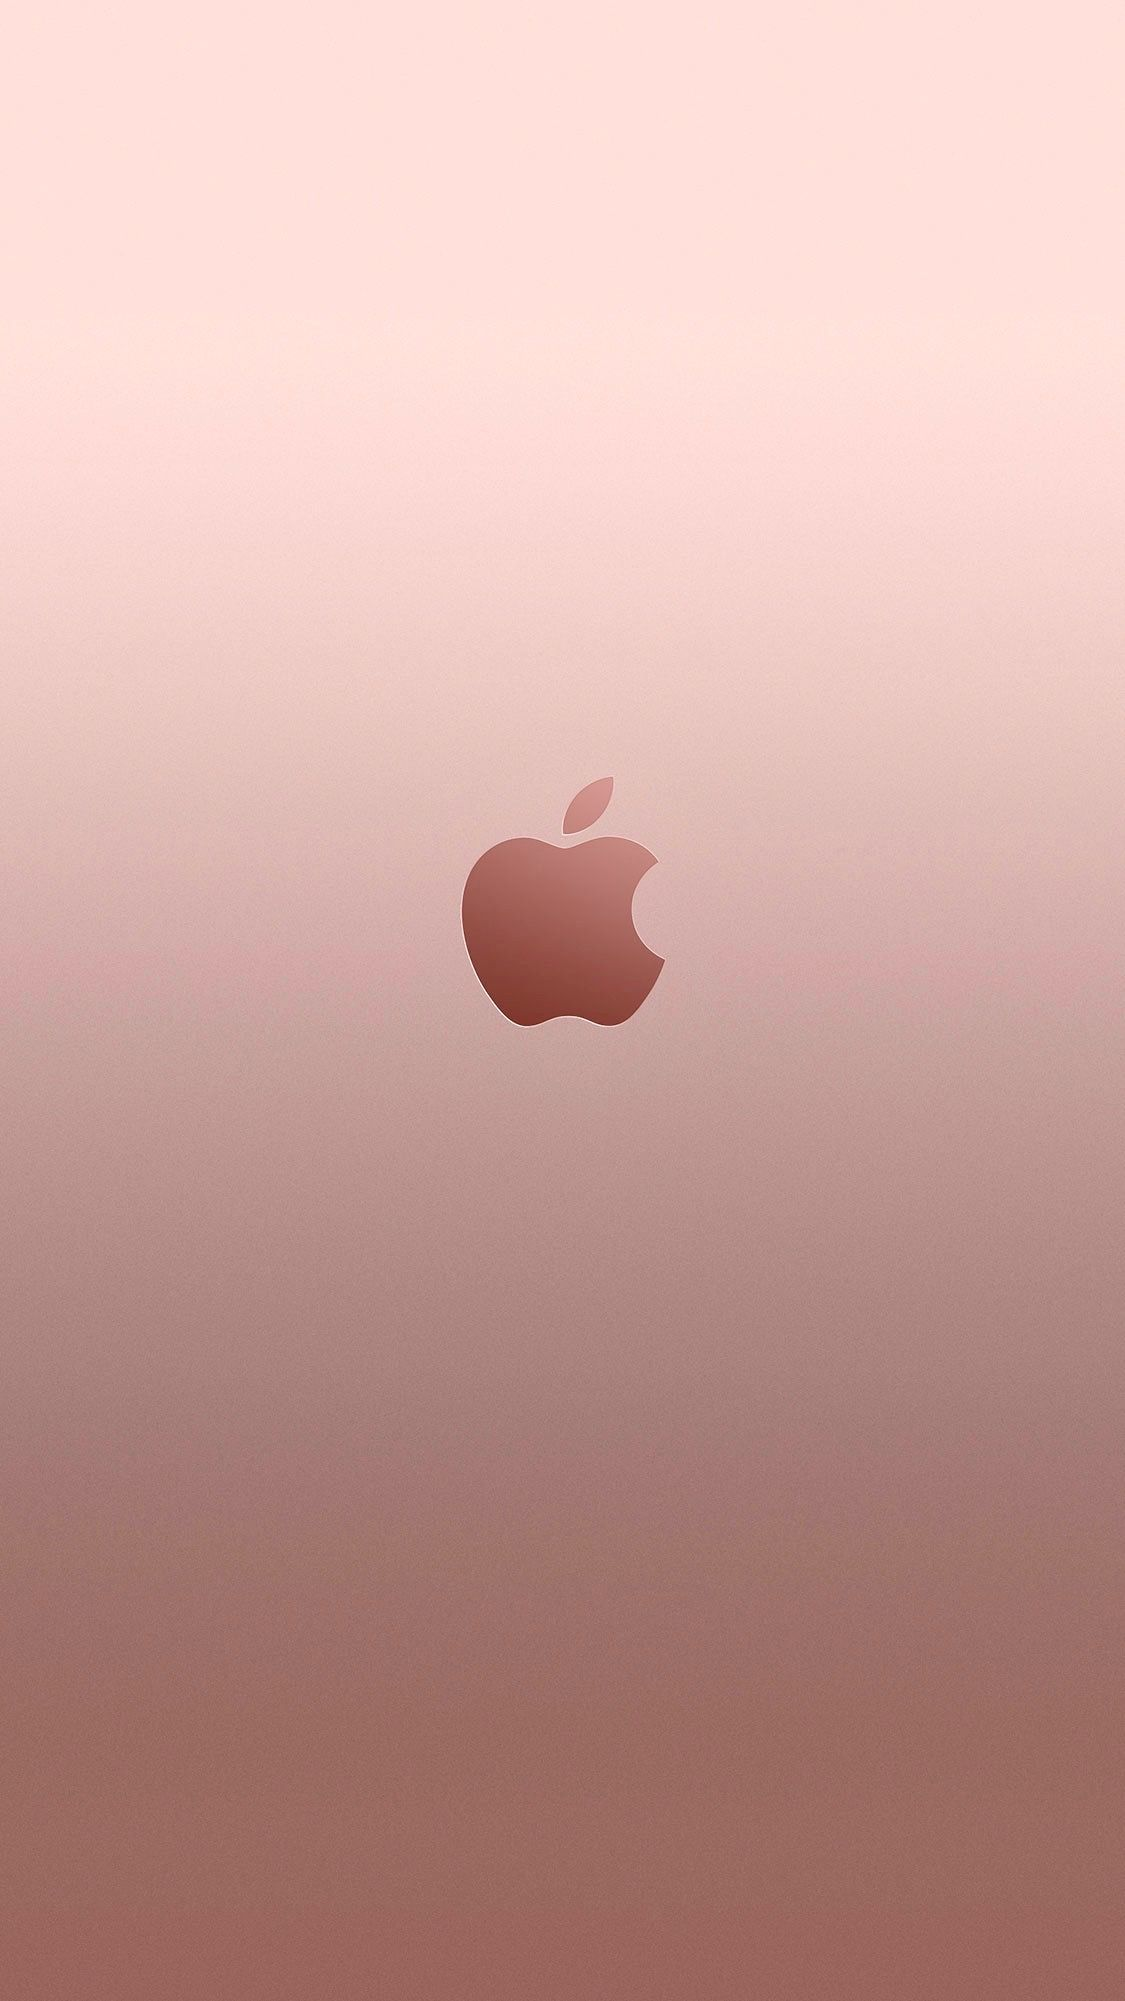 Apple Rose Gold Iphone Wallpaper Sfondi Iphone Sfondo Iphone Sfondi Carini